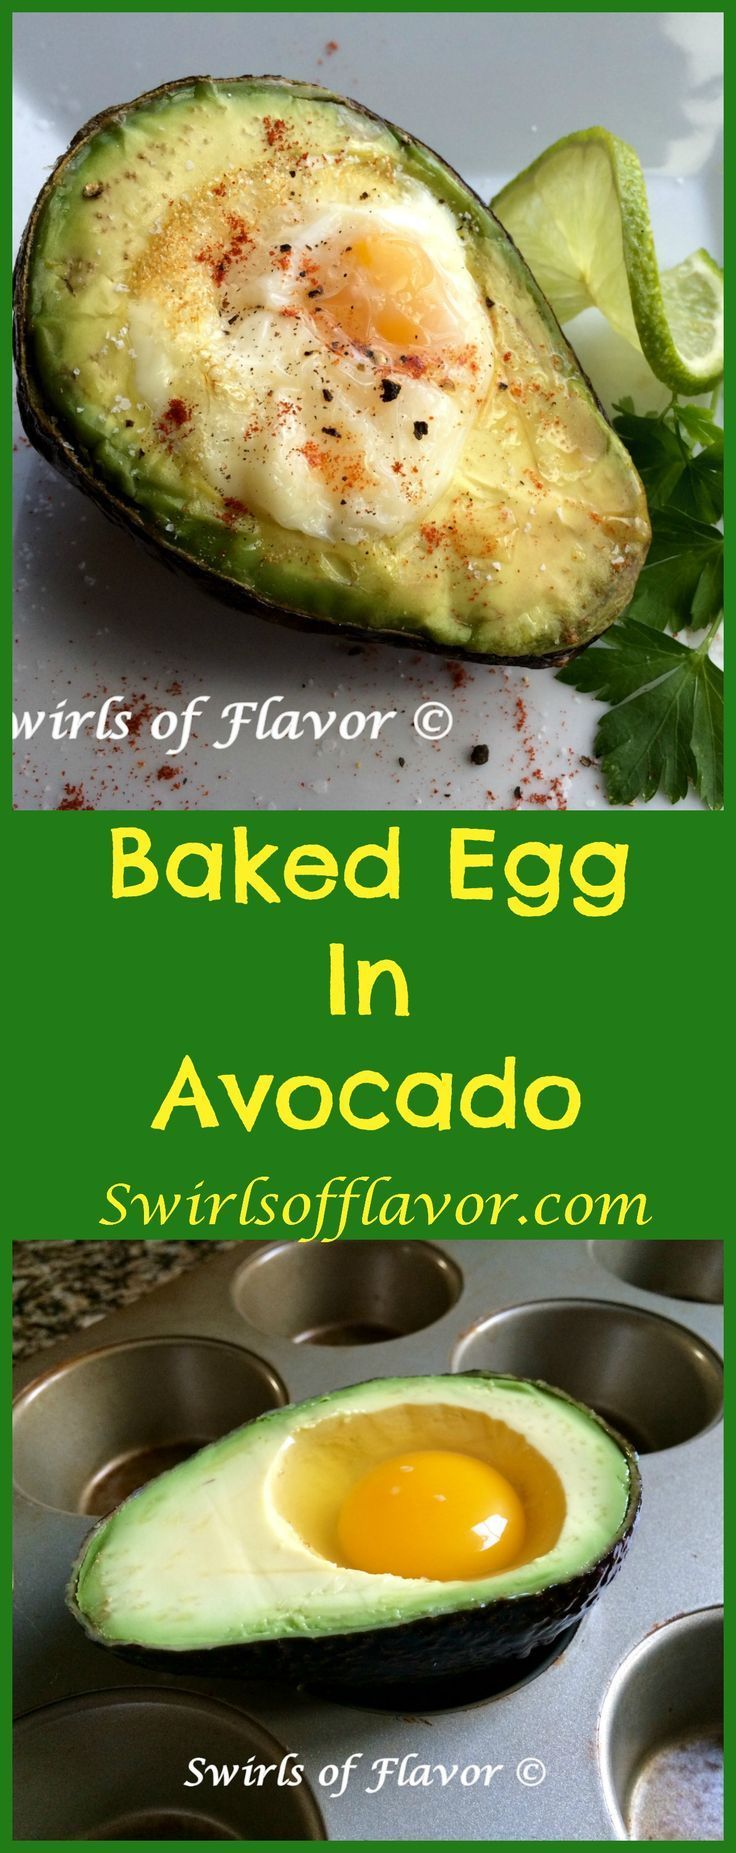 Baked Egg In Avocado combines the perfect protein with a healthy fat creating a powerhouse of nutrition for breakfast! #nationaleggday